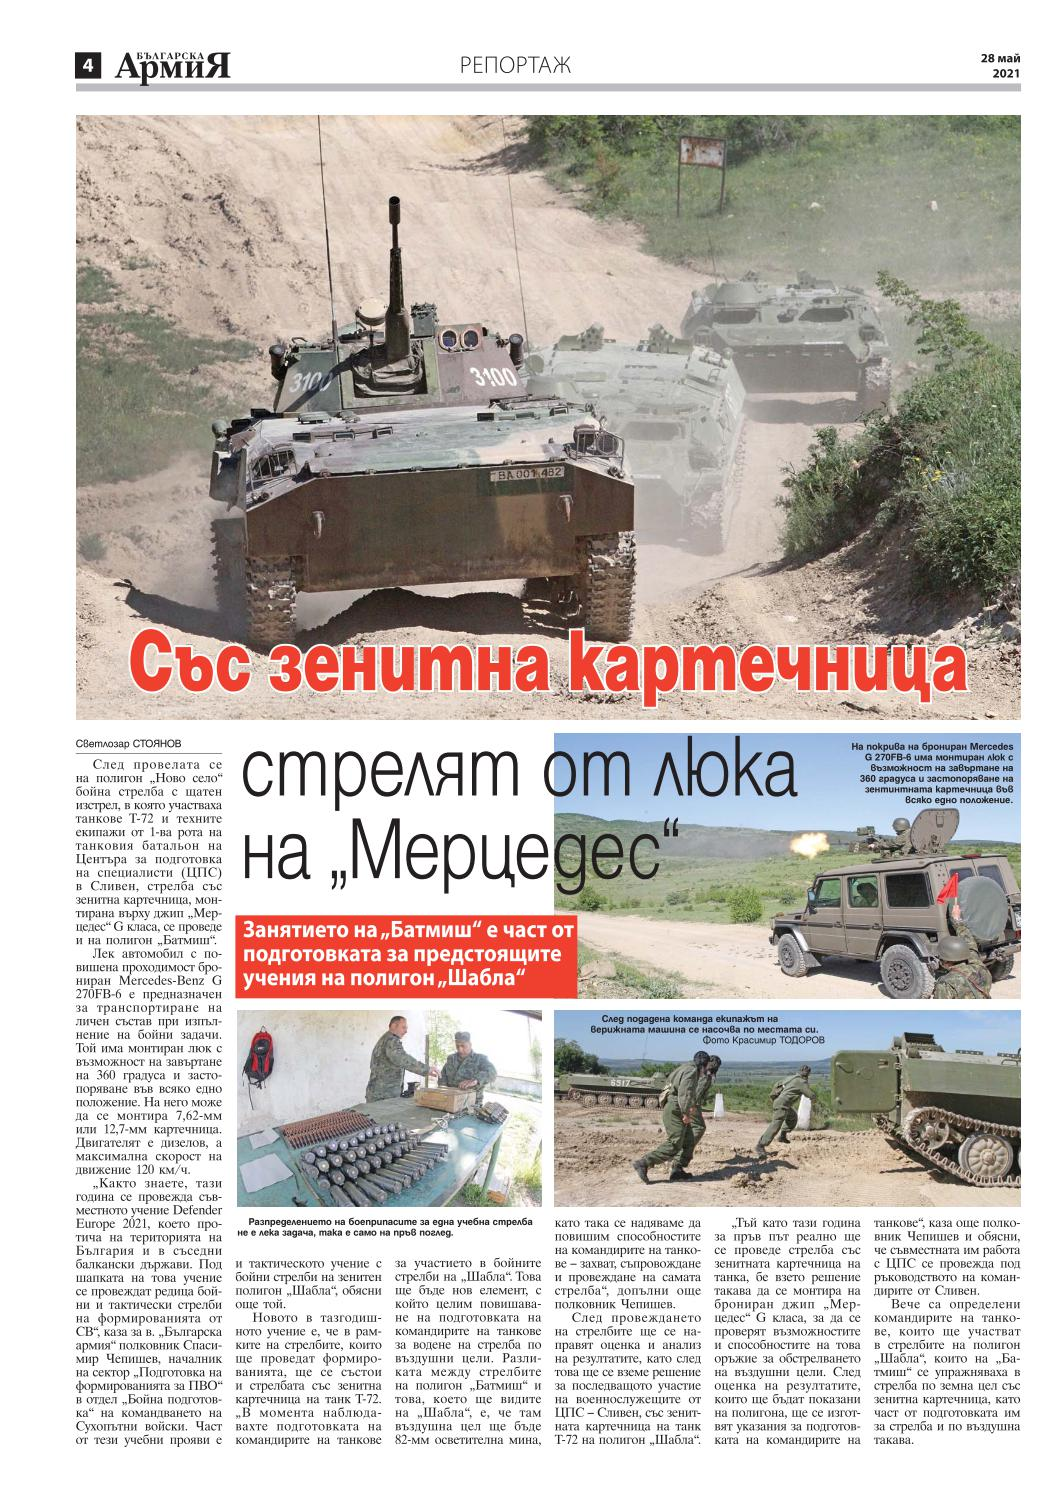 https://armymedia.bg/wp-content/uploads/2021/05/04.page1_-3.jpg